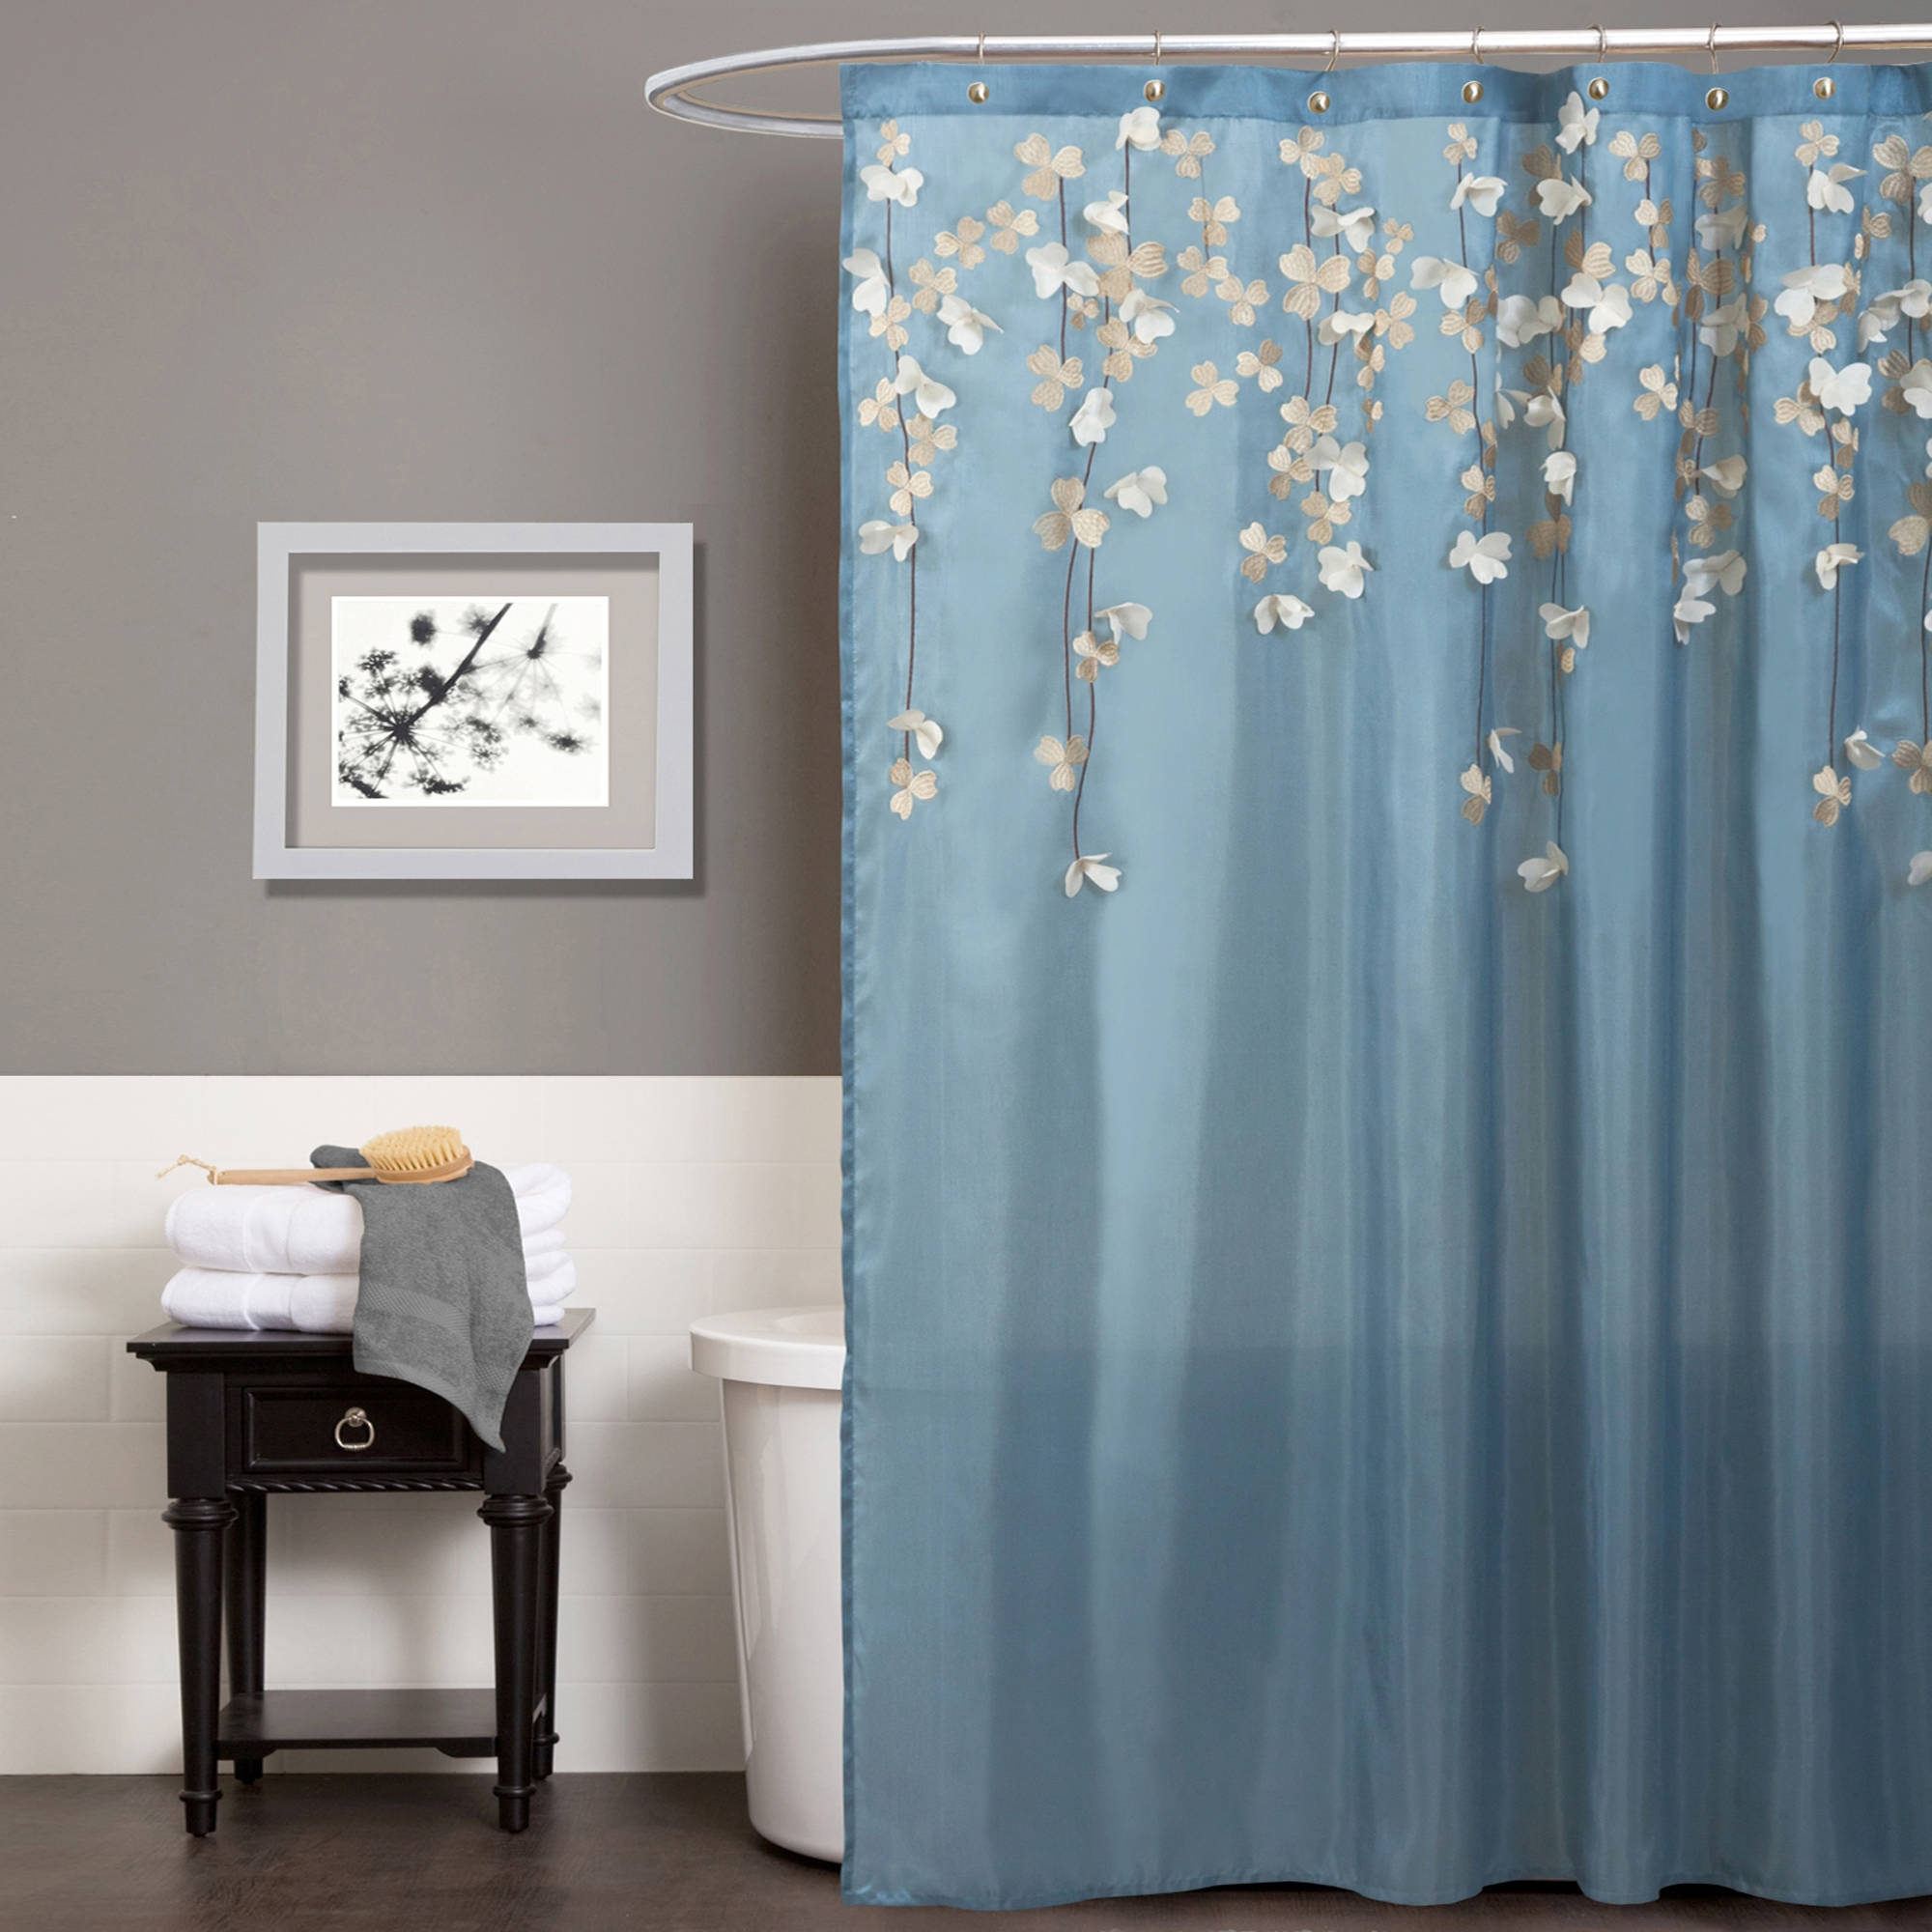 liner s heavy curtain of duty mdesign picture vinyl antibac shower gauge curtains p waterproof